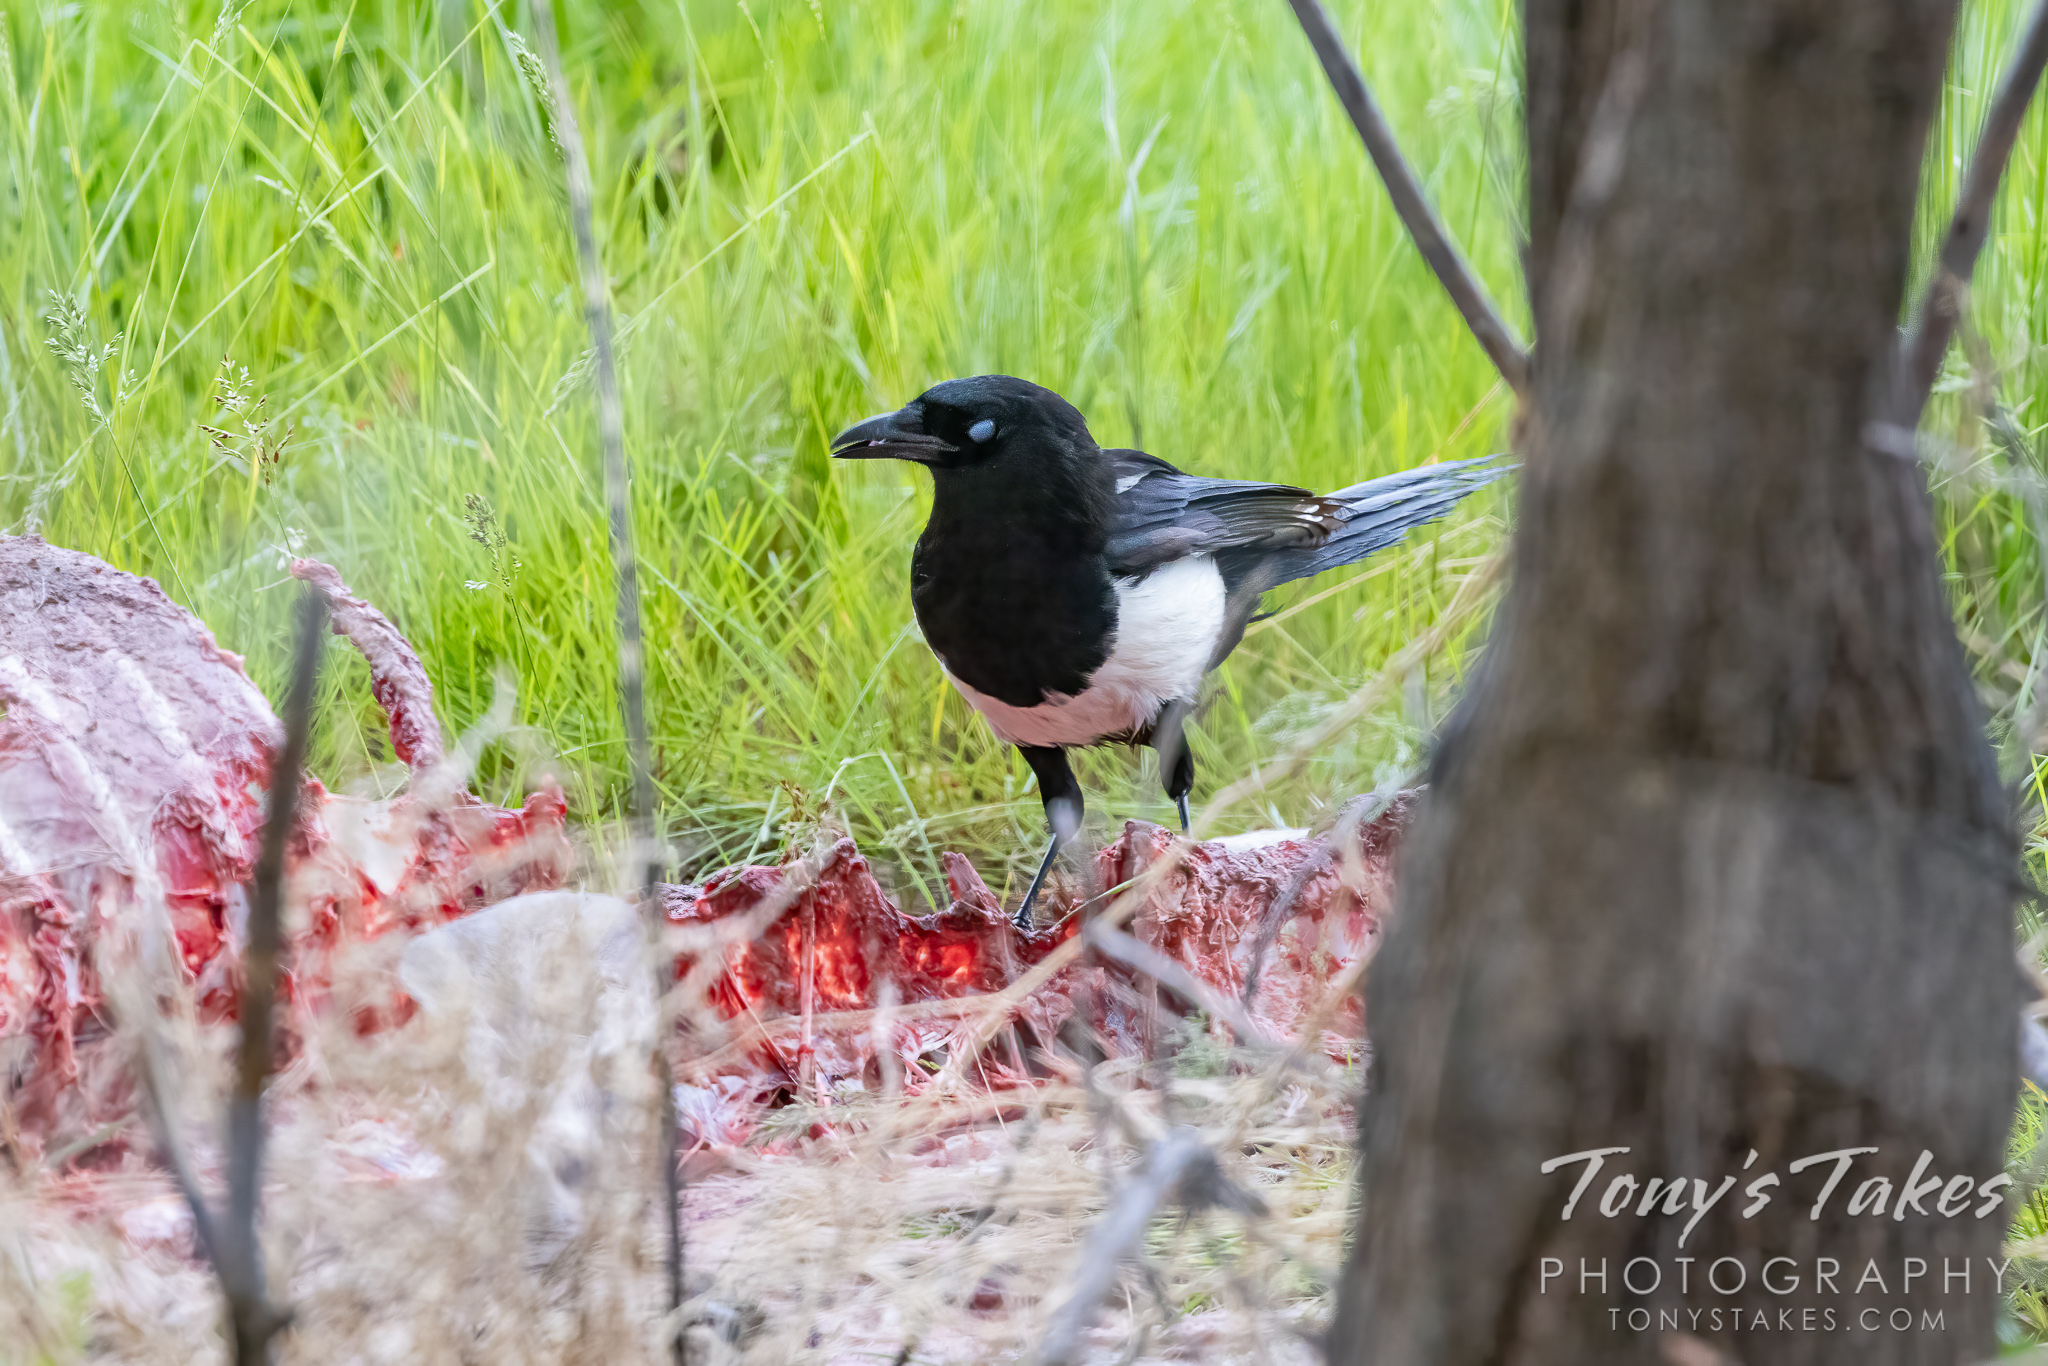 A magpie scavenges off of a deer carcass. (© Tony's Takes)